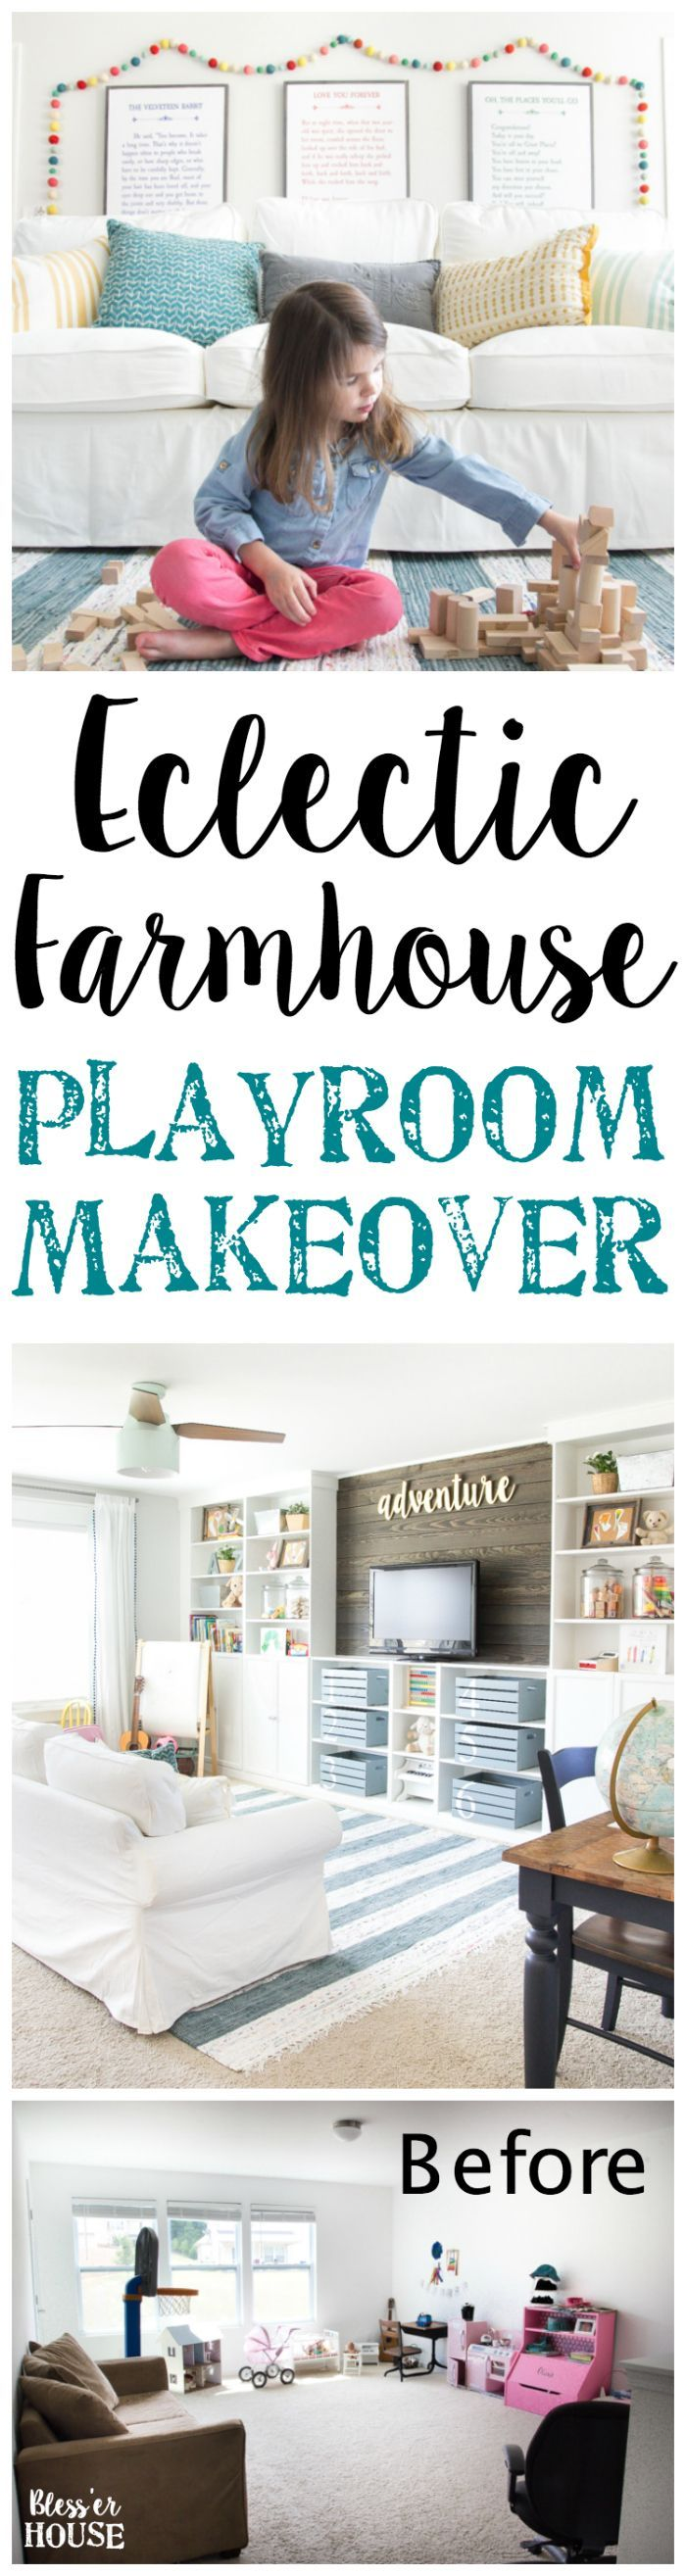 96 Best Play Room Images On Pinterest | Play Rooms, Playroom